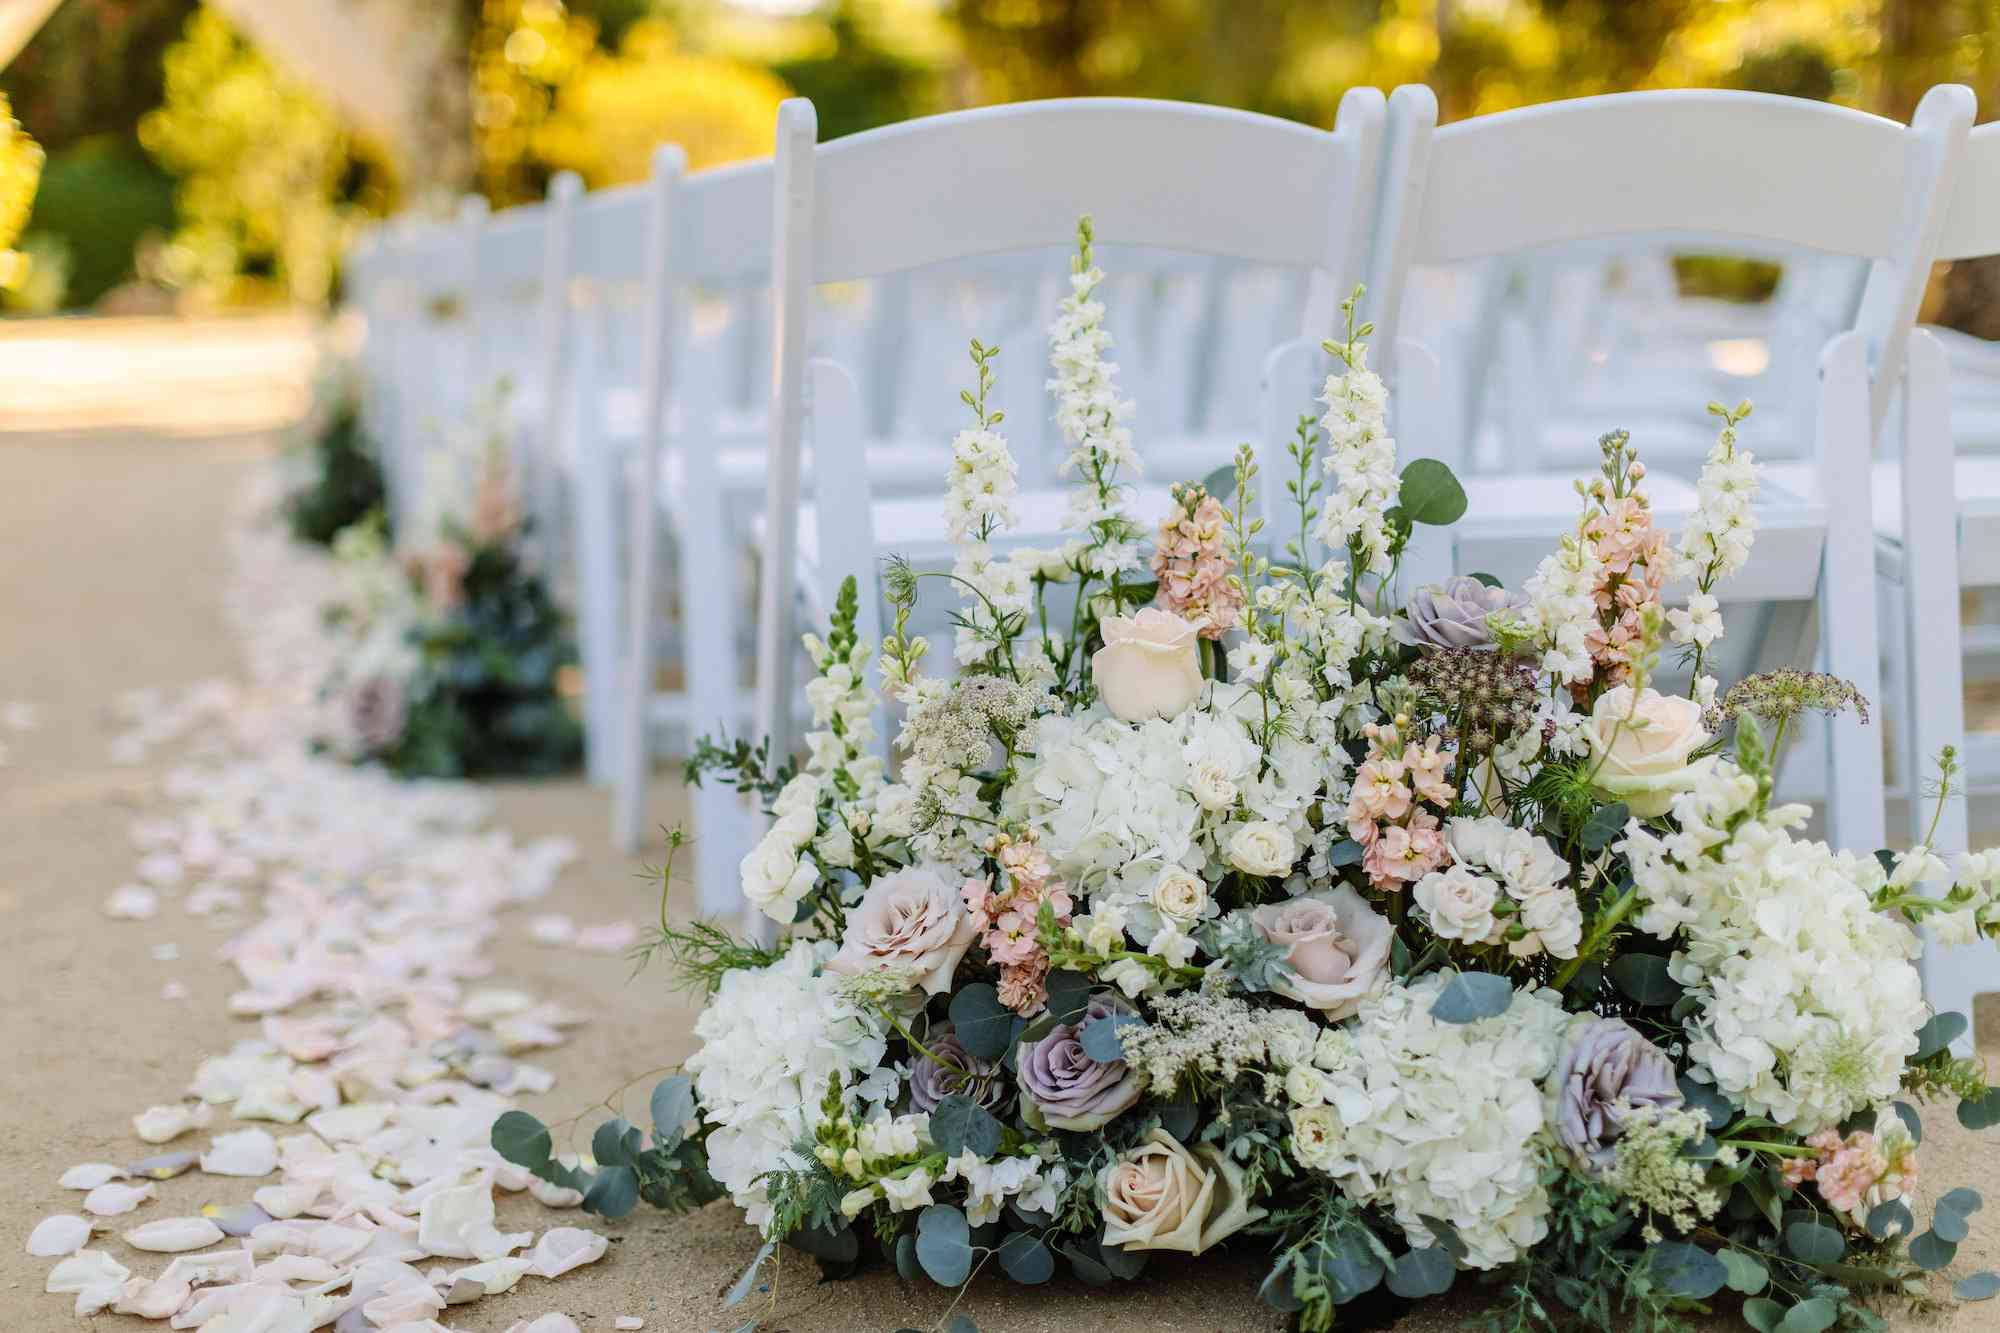 Mixed floral arrangement on the ground at the start of wedding aisle with petals lining aisle